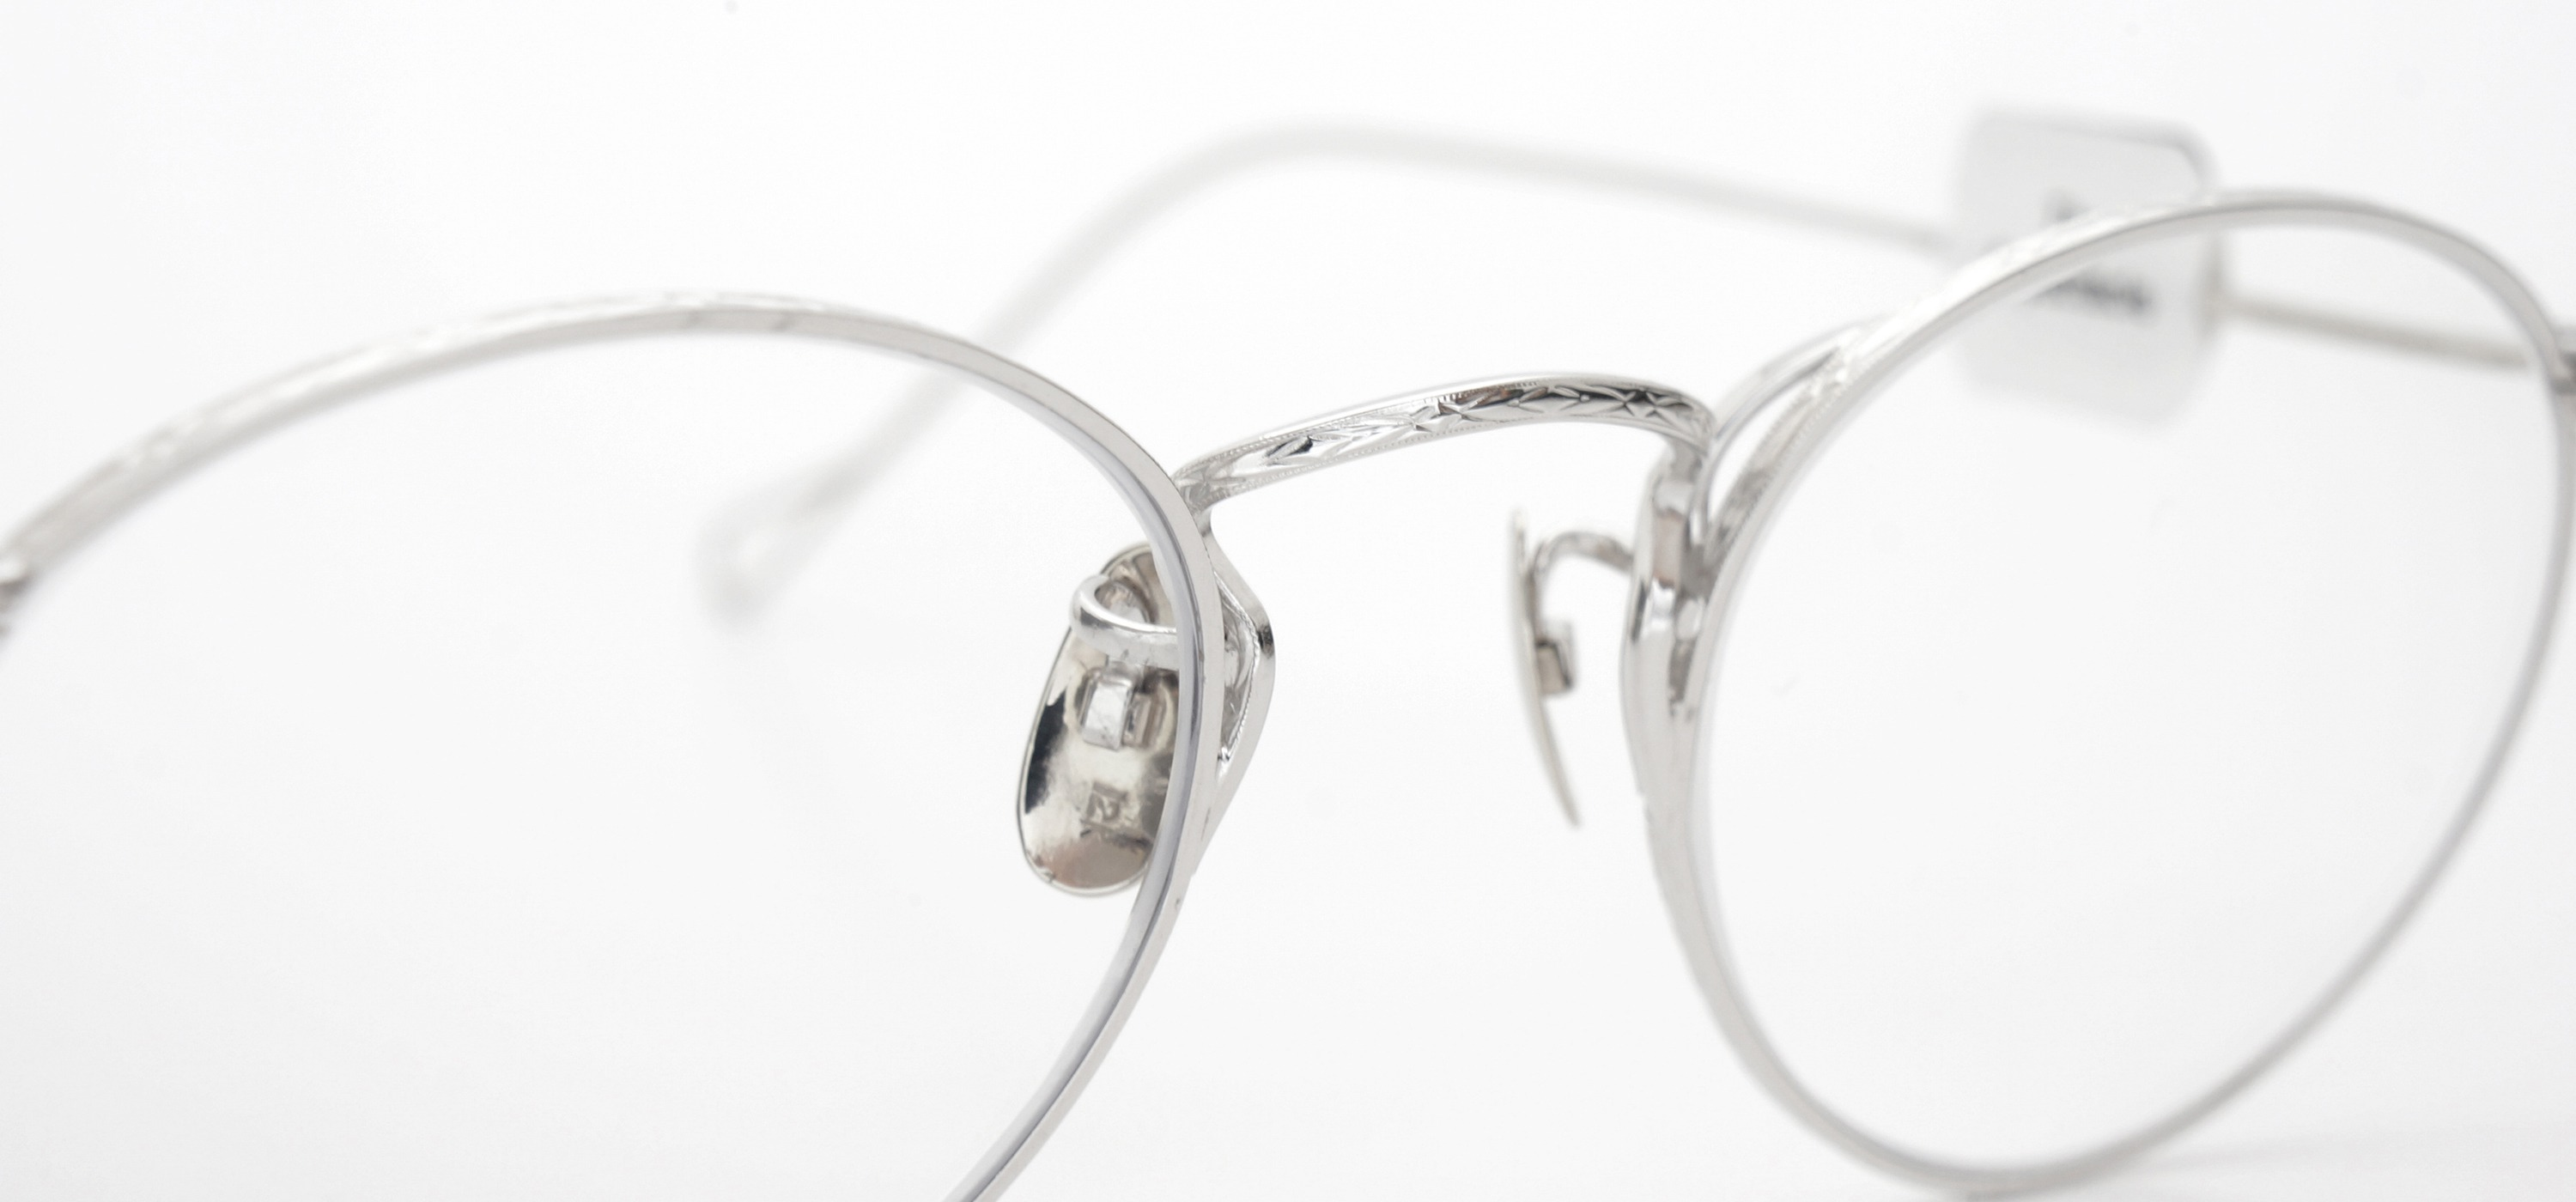 The Spectacle メガネ 1937 Artcraft Optical The-Artbit NOKOROD P-6 WG 12kPads 45-21 イメージ8